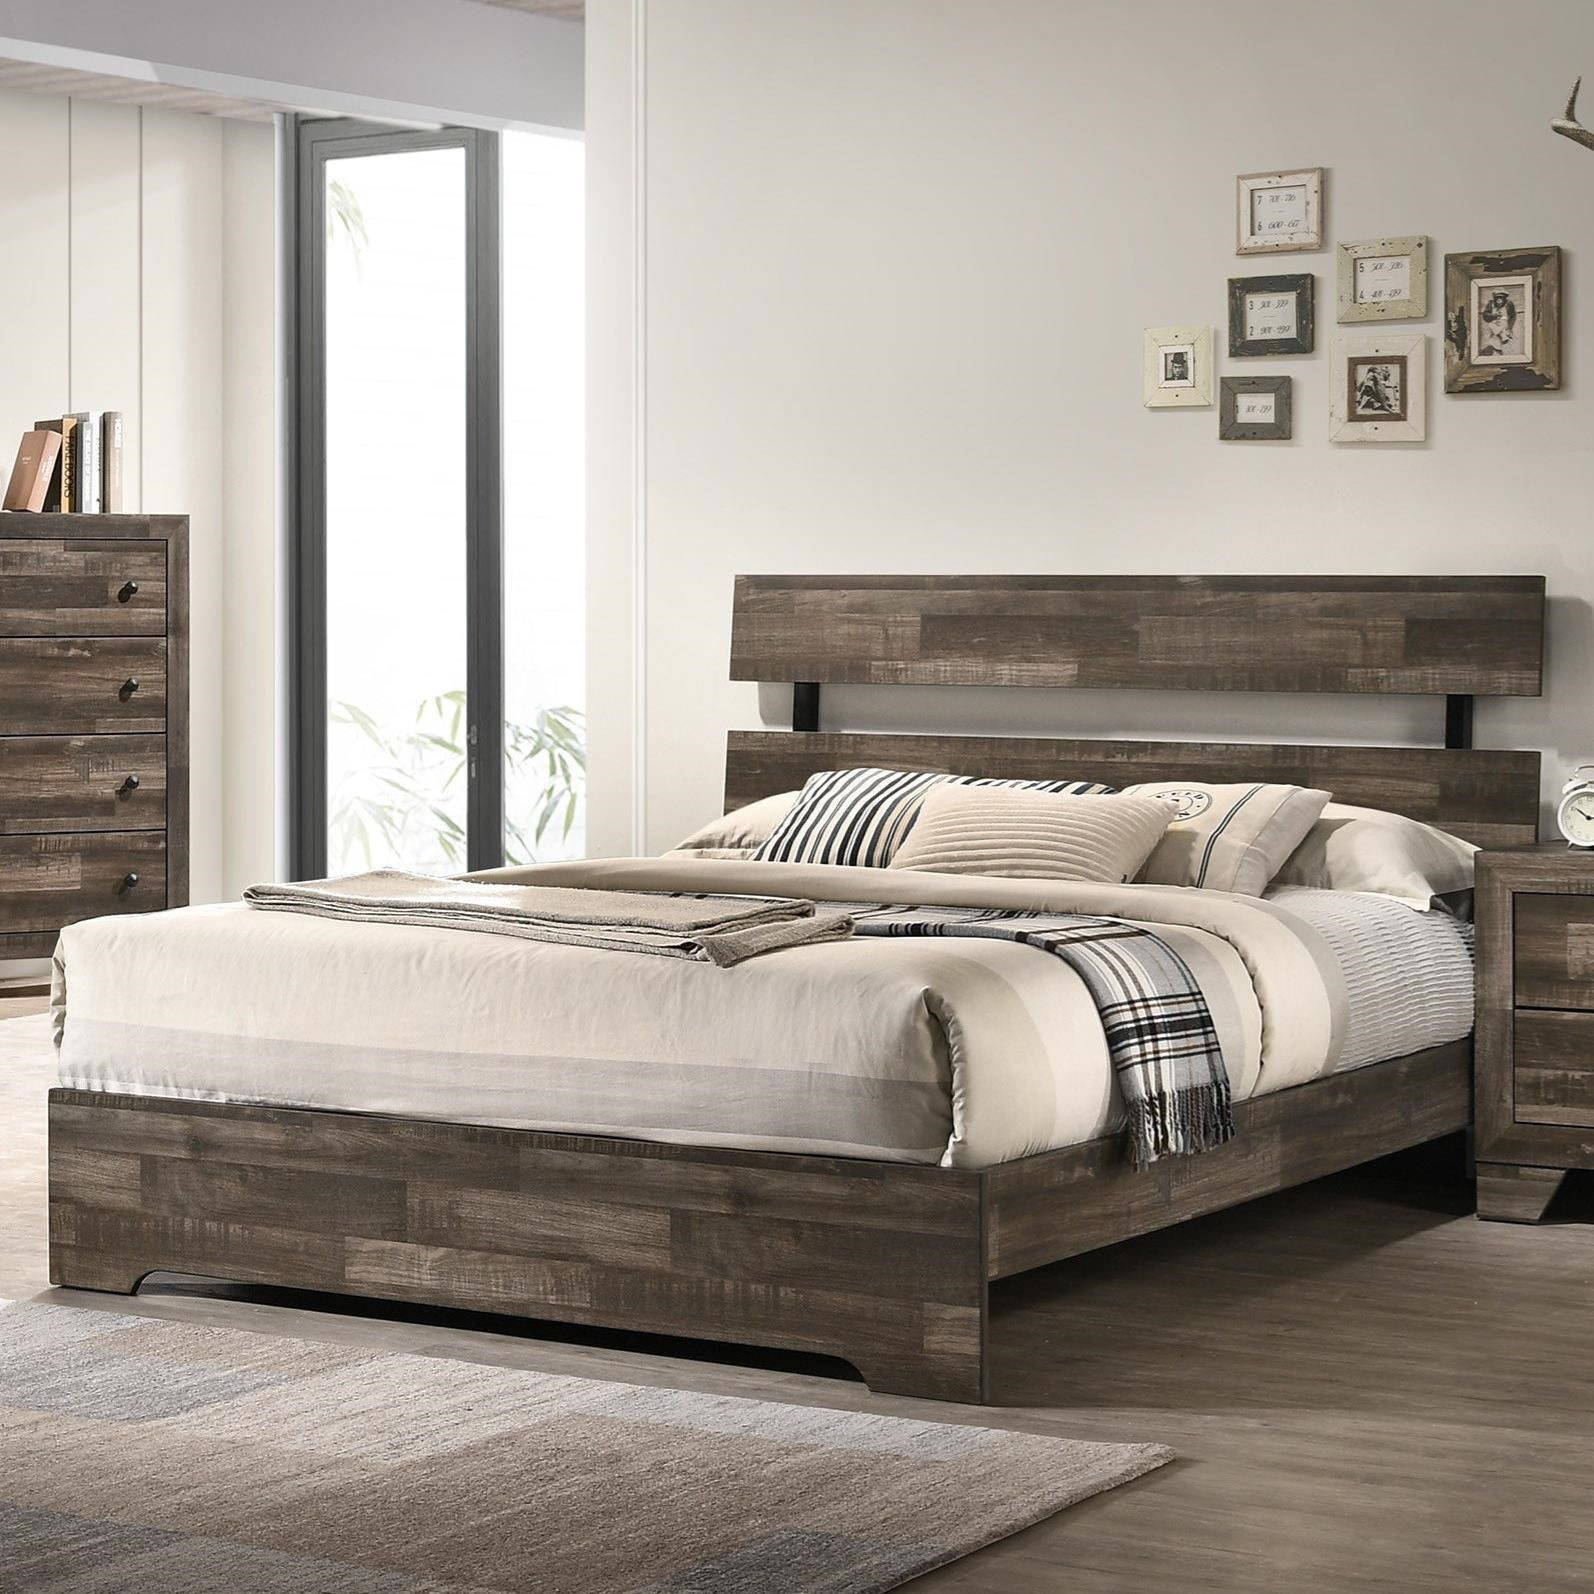 Atticus King Bed by Crown Mark at Wilcox Furniture